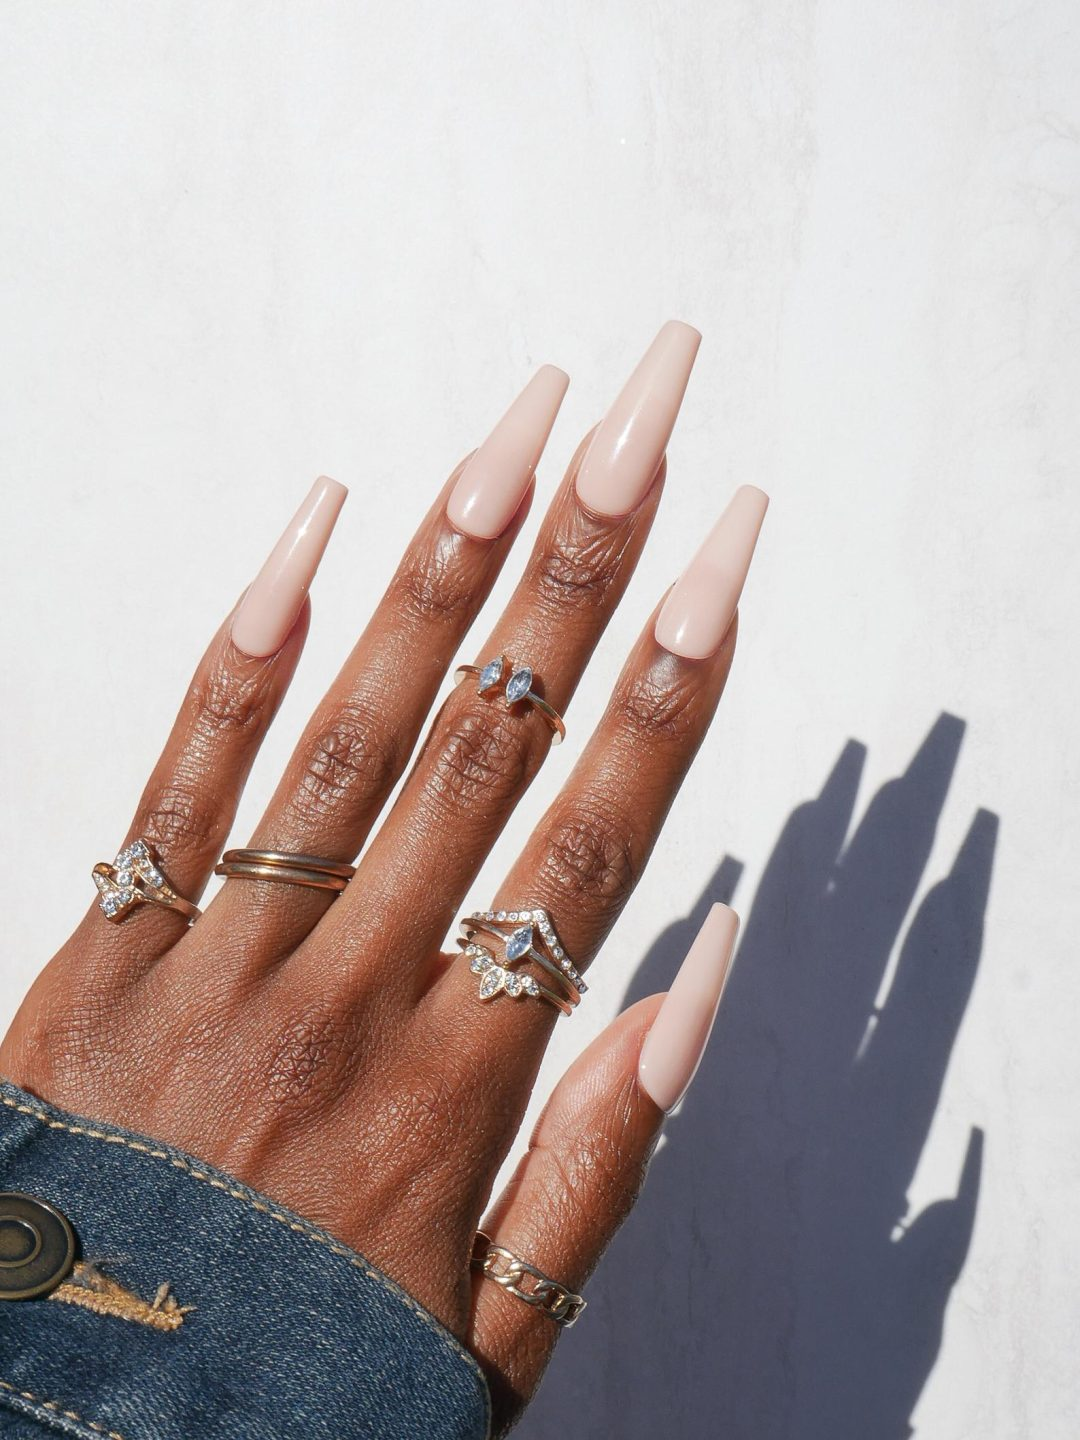 50+ Beautiful Press On Nails To Get The Perfect Mani At Home